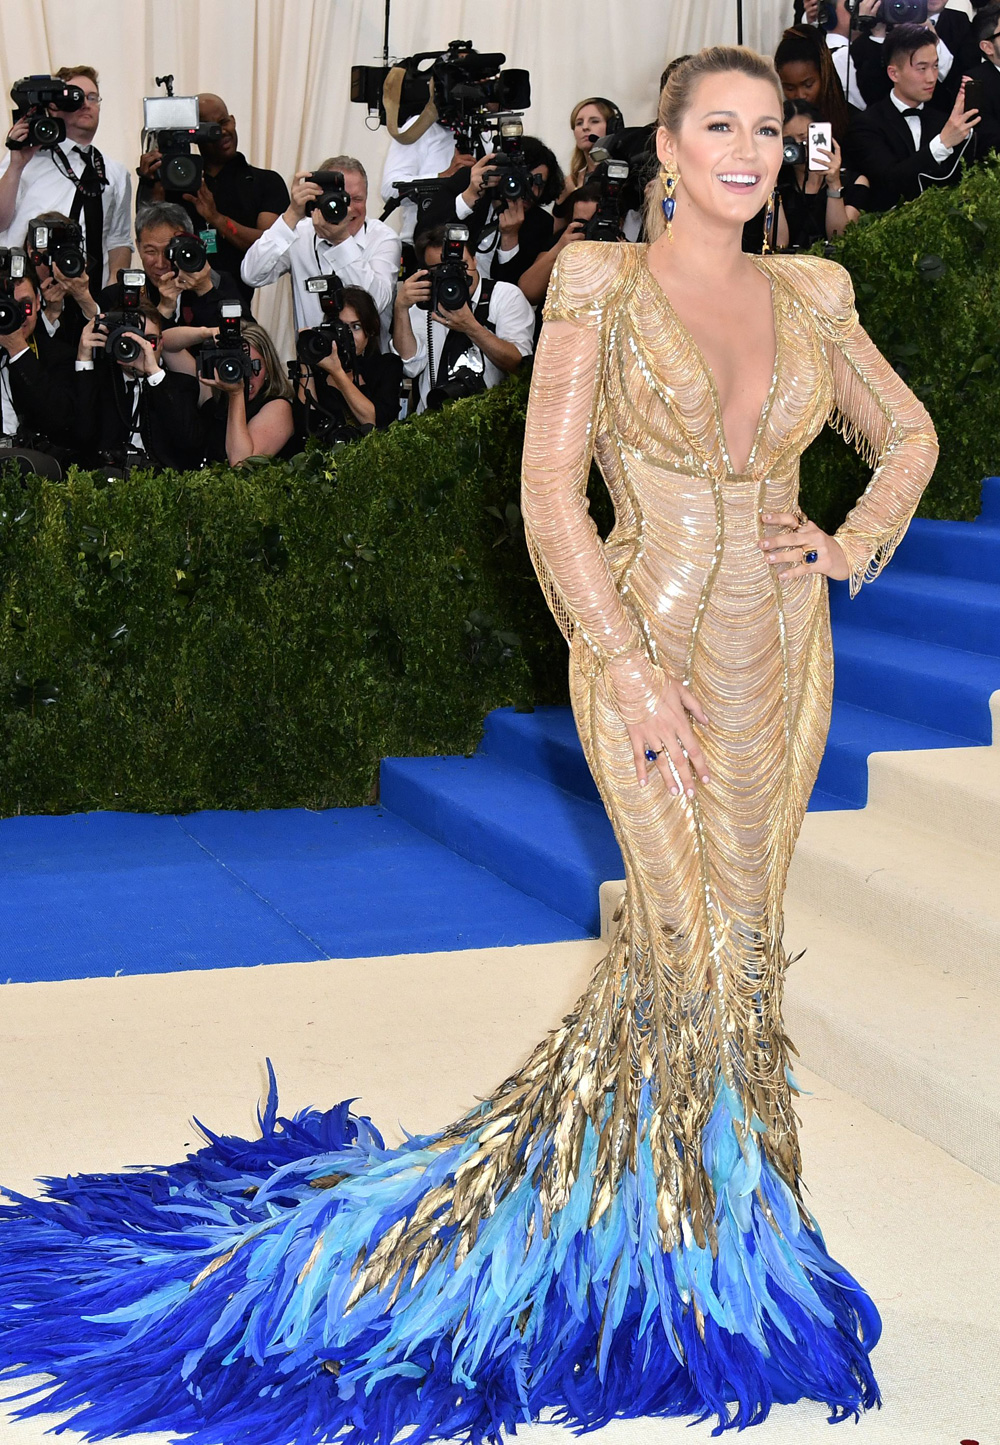 Blake Lively in a Custom-Made, Atelier Versace Gown | About Her